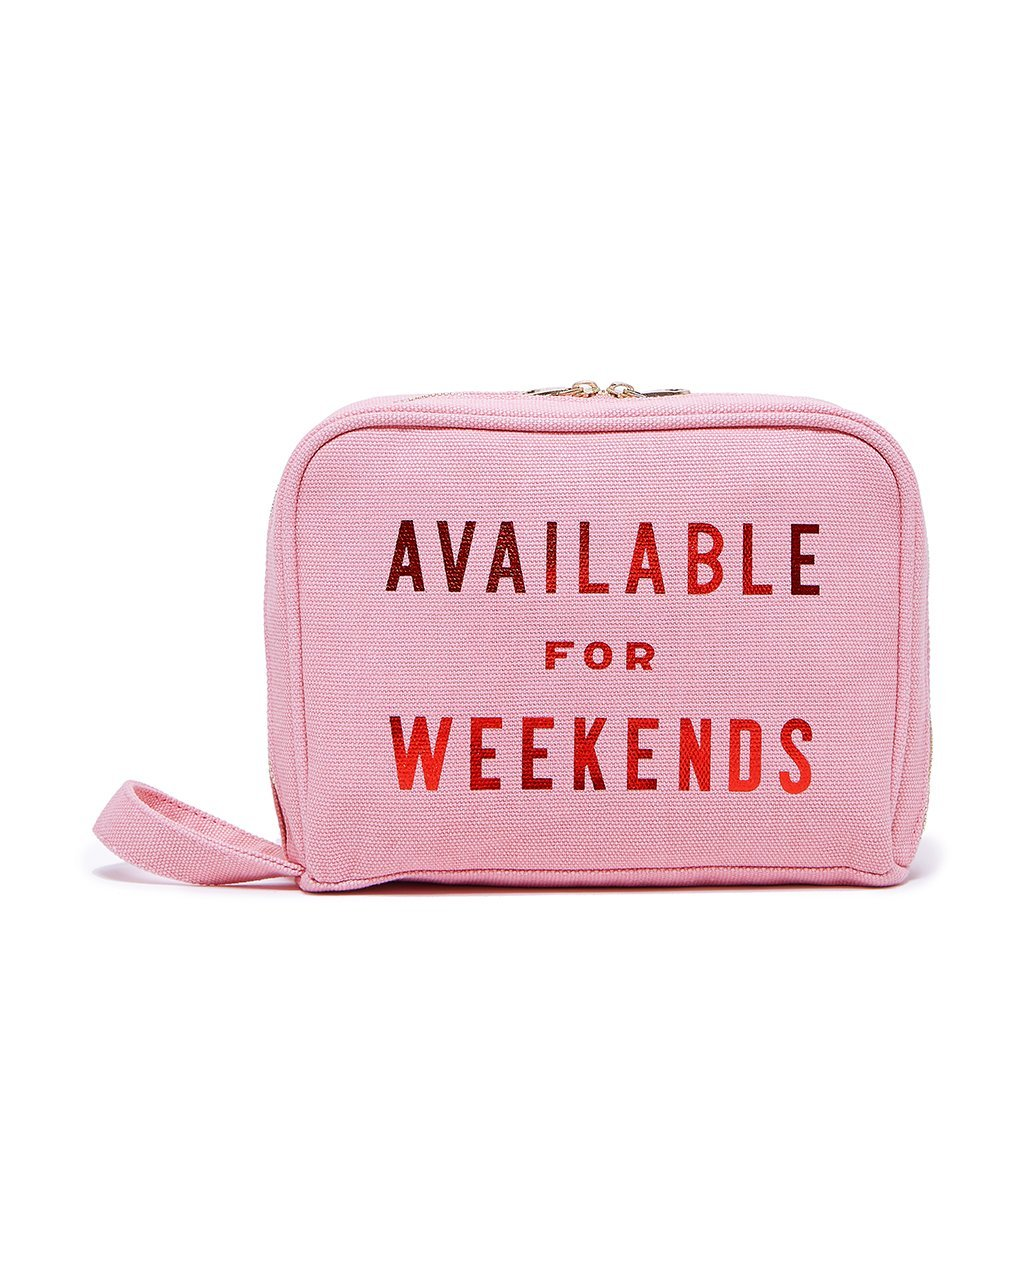 ban.do design toiletries bag, available for weekends (74951)